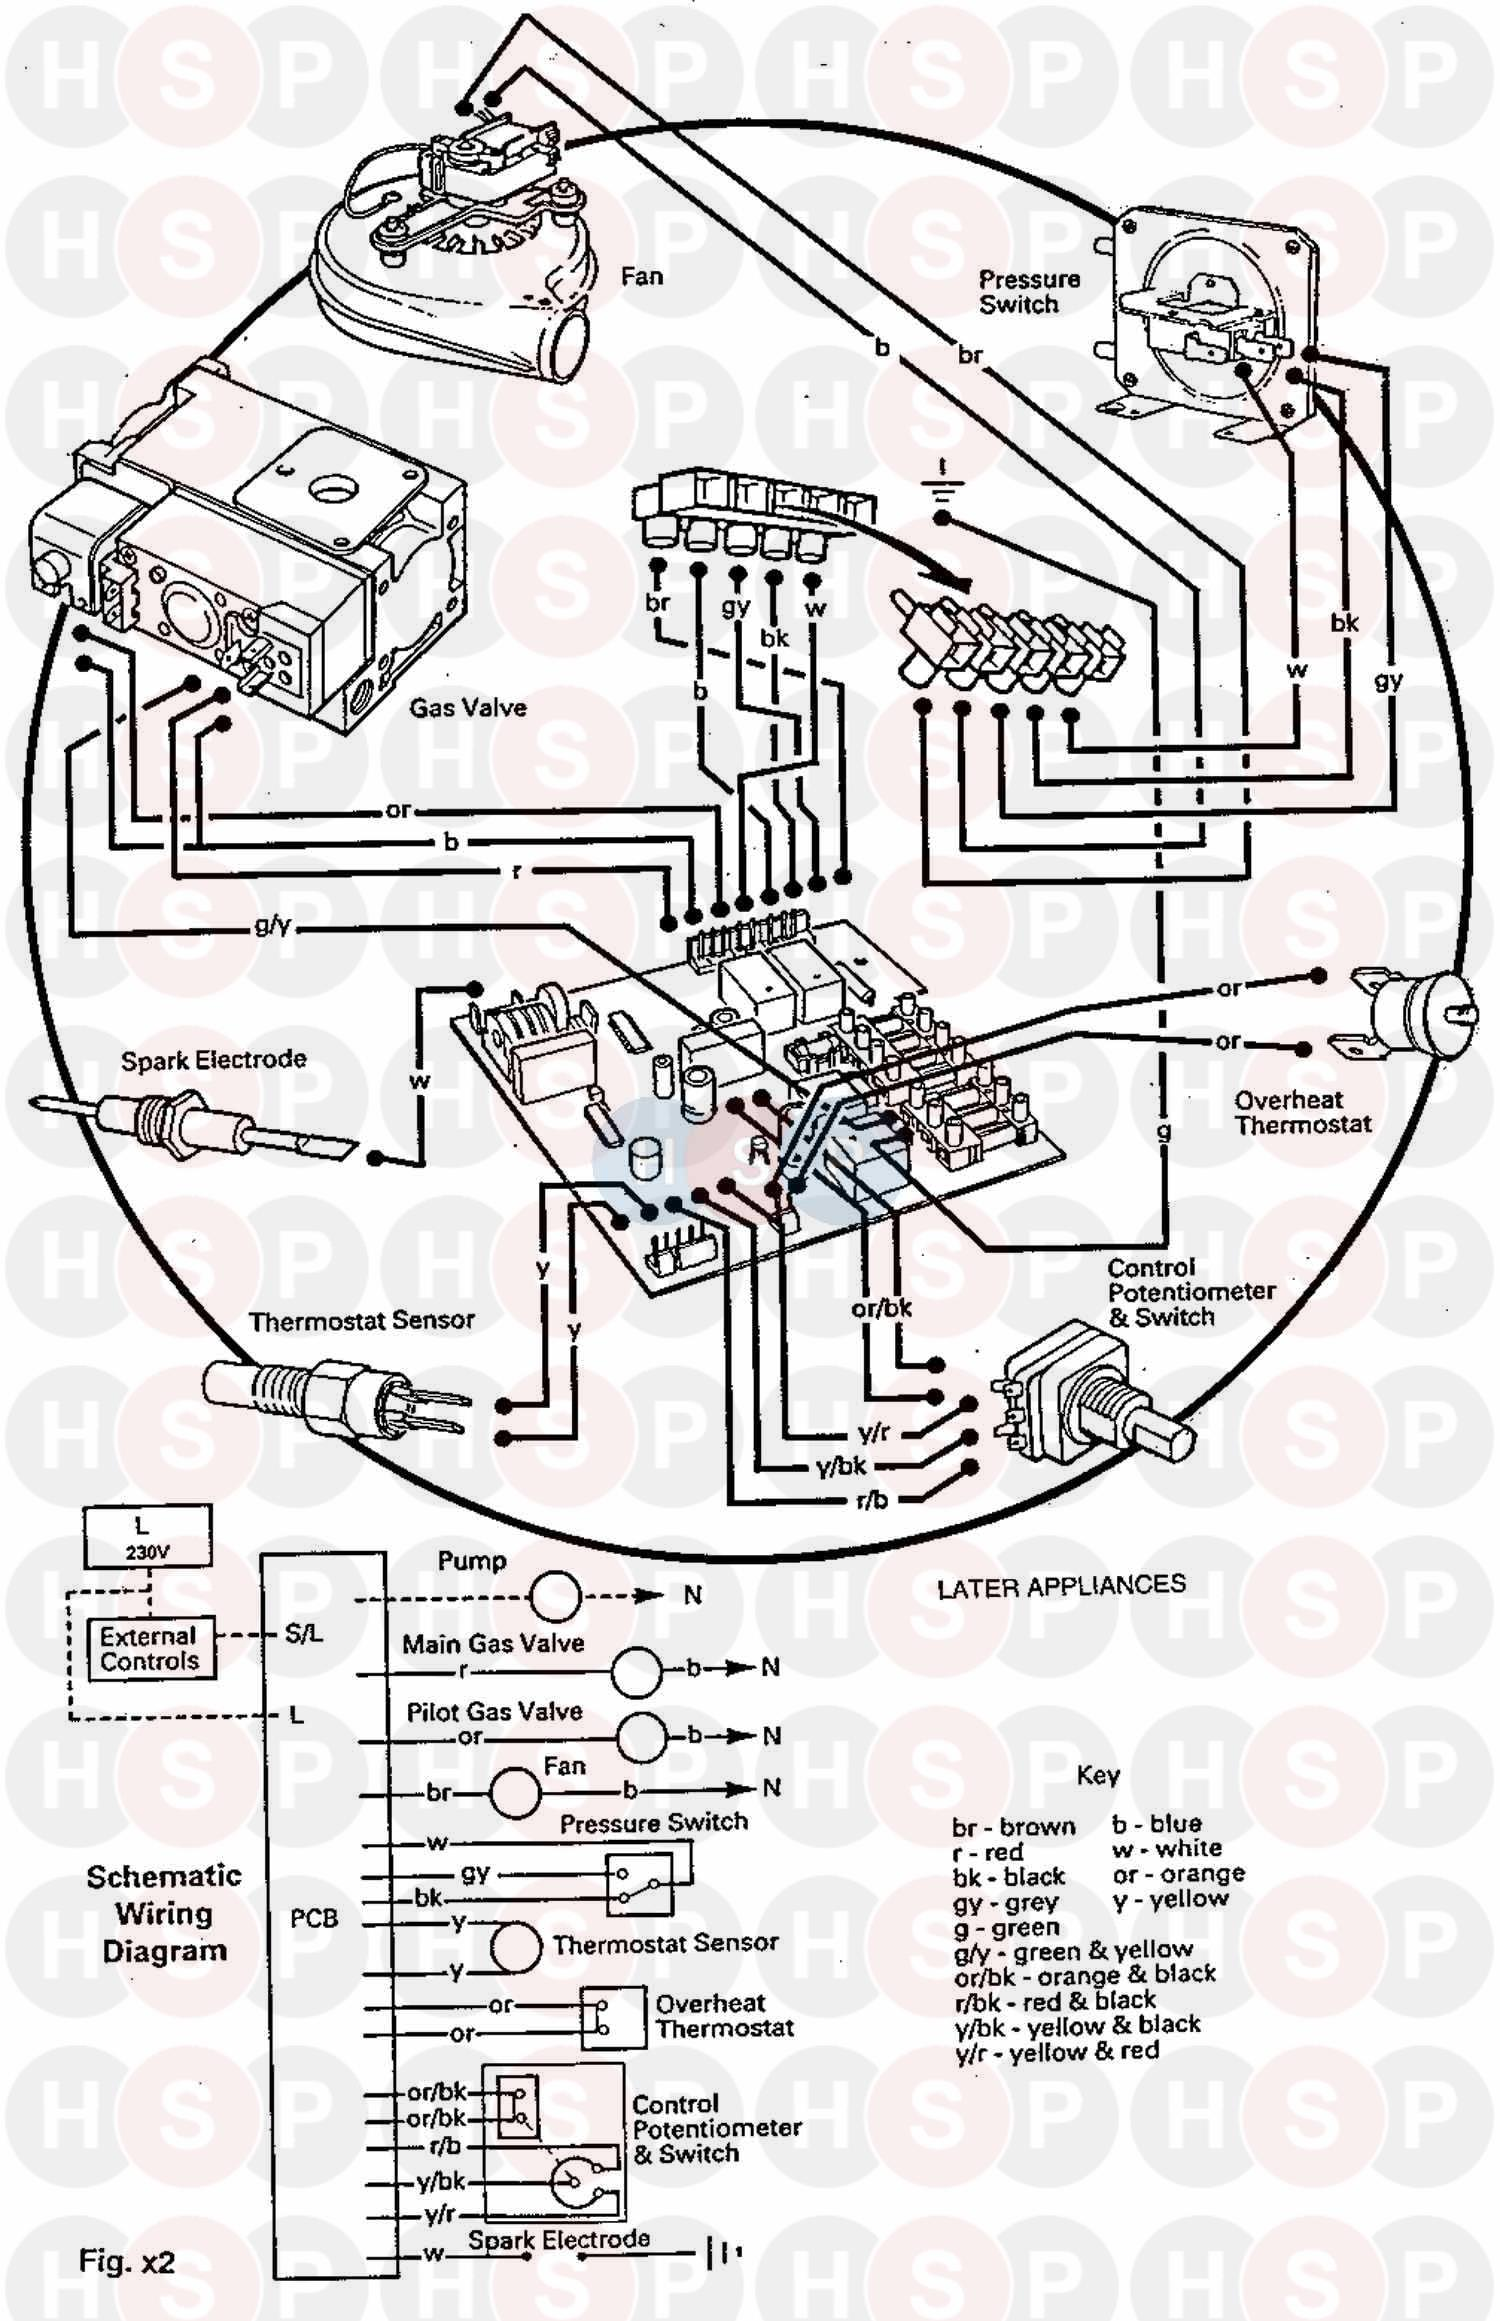 Baxi SOLO PF 2 60 (Wiring Diagram (Later Applianc) Diagram